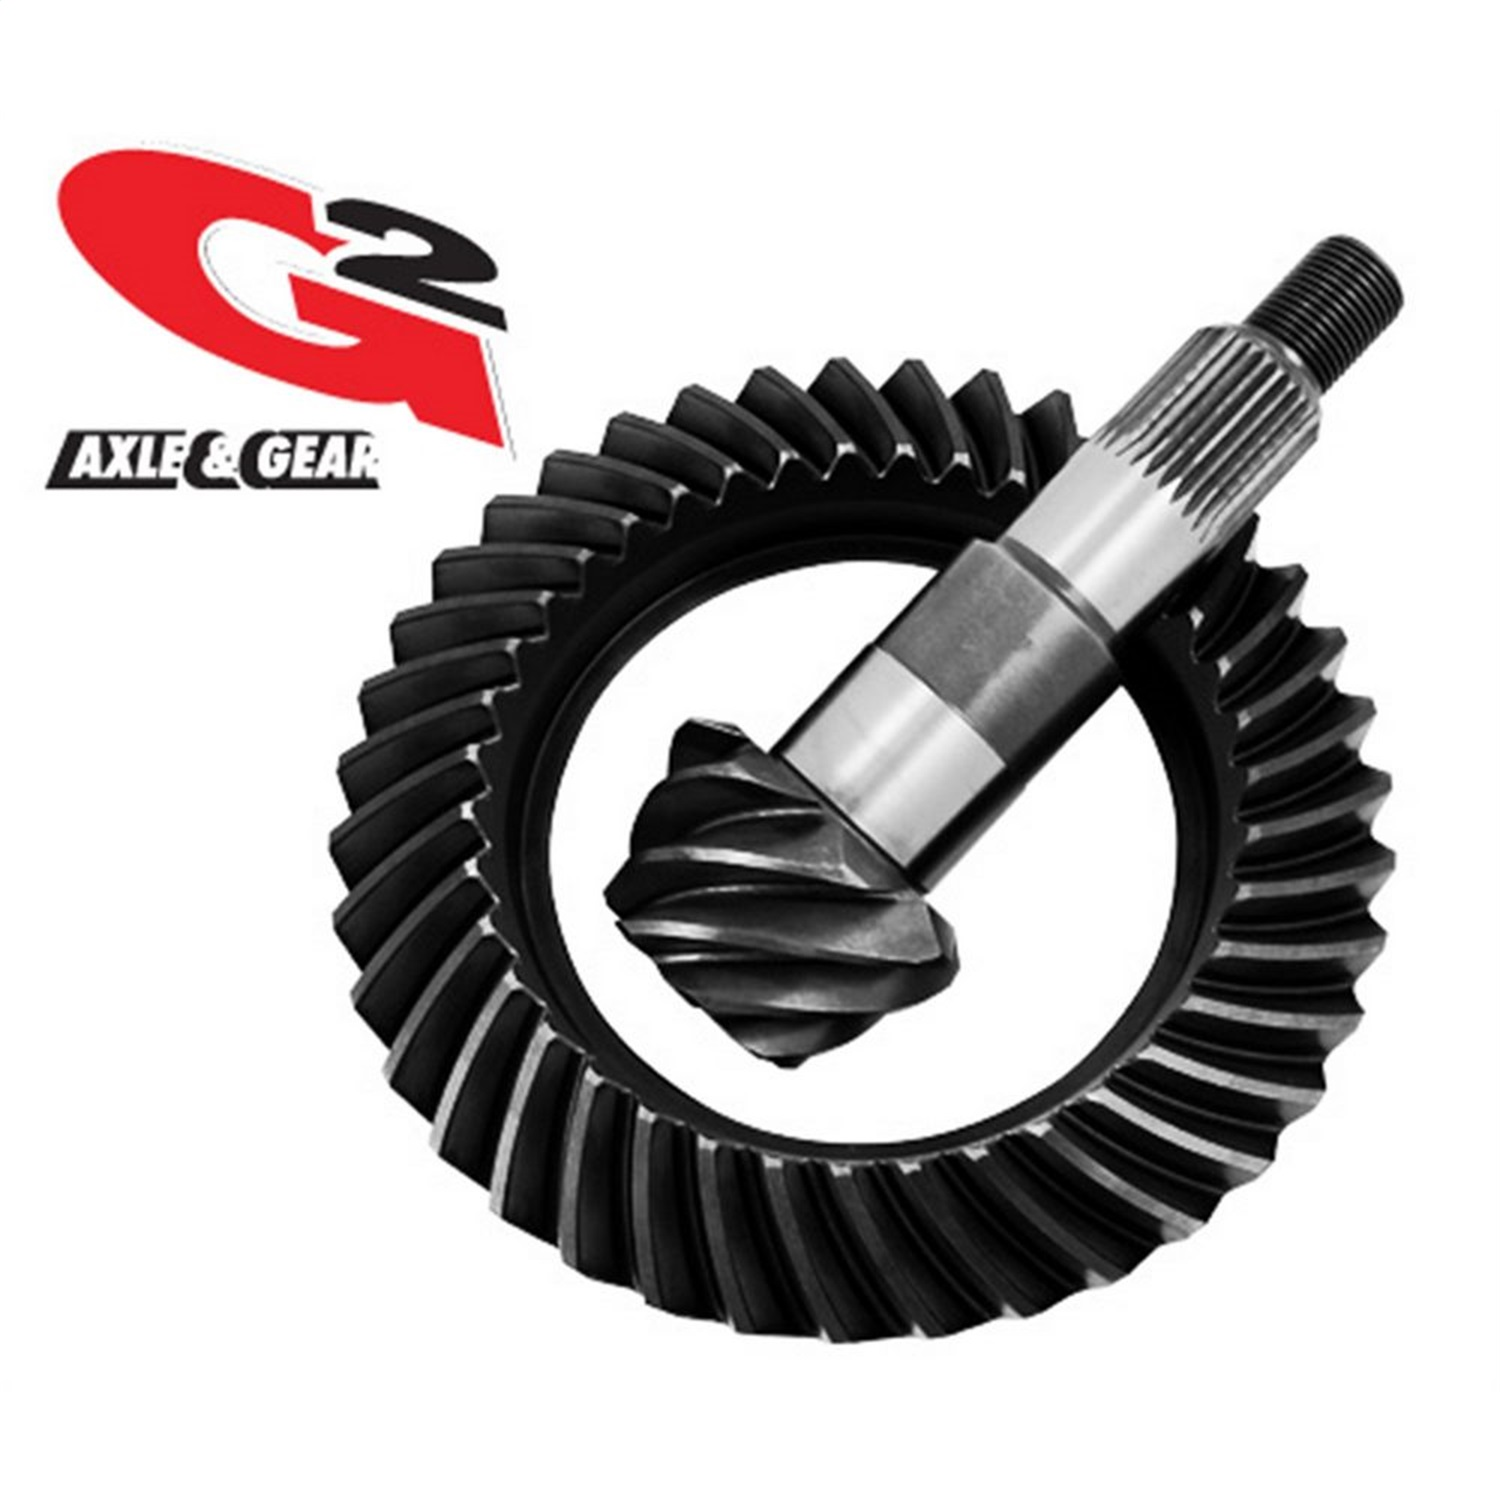 G2 Axle and Gear 2-2049-488 Ring and Pinion Set